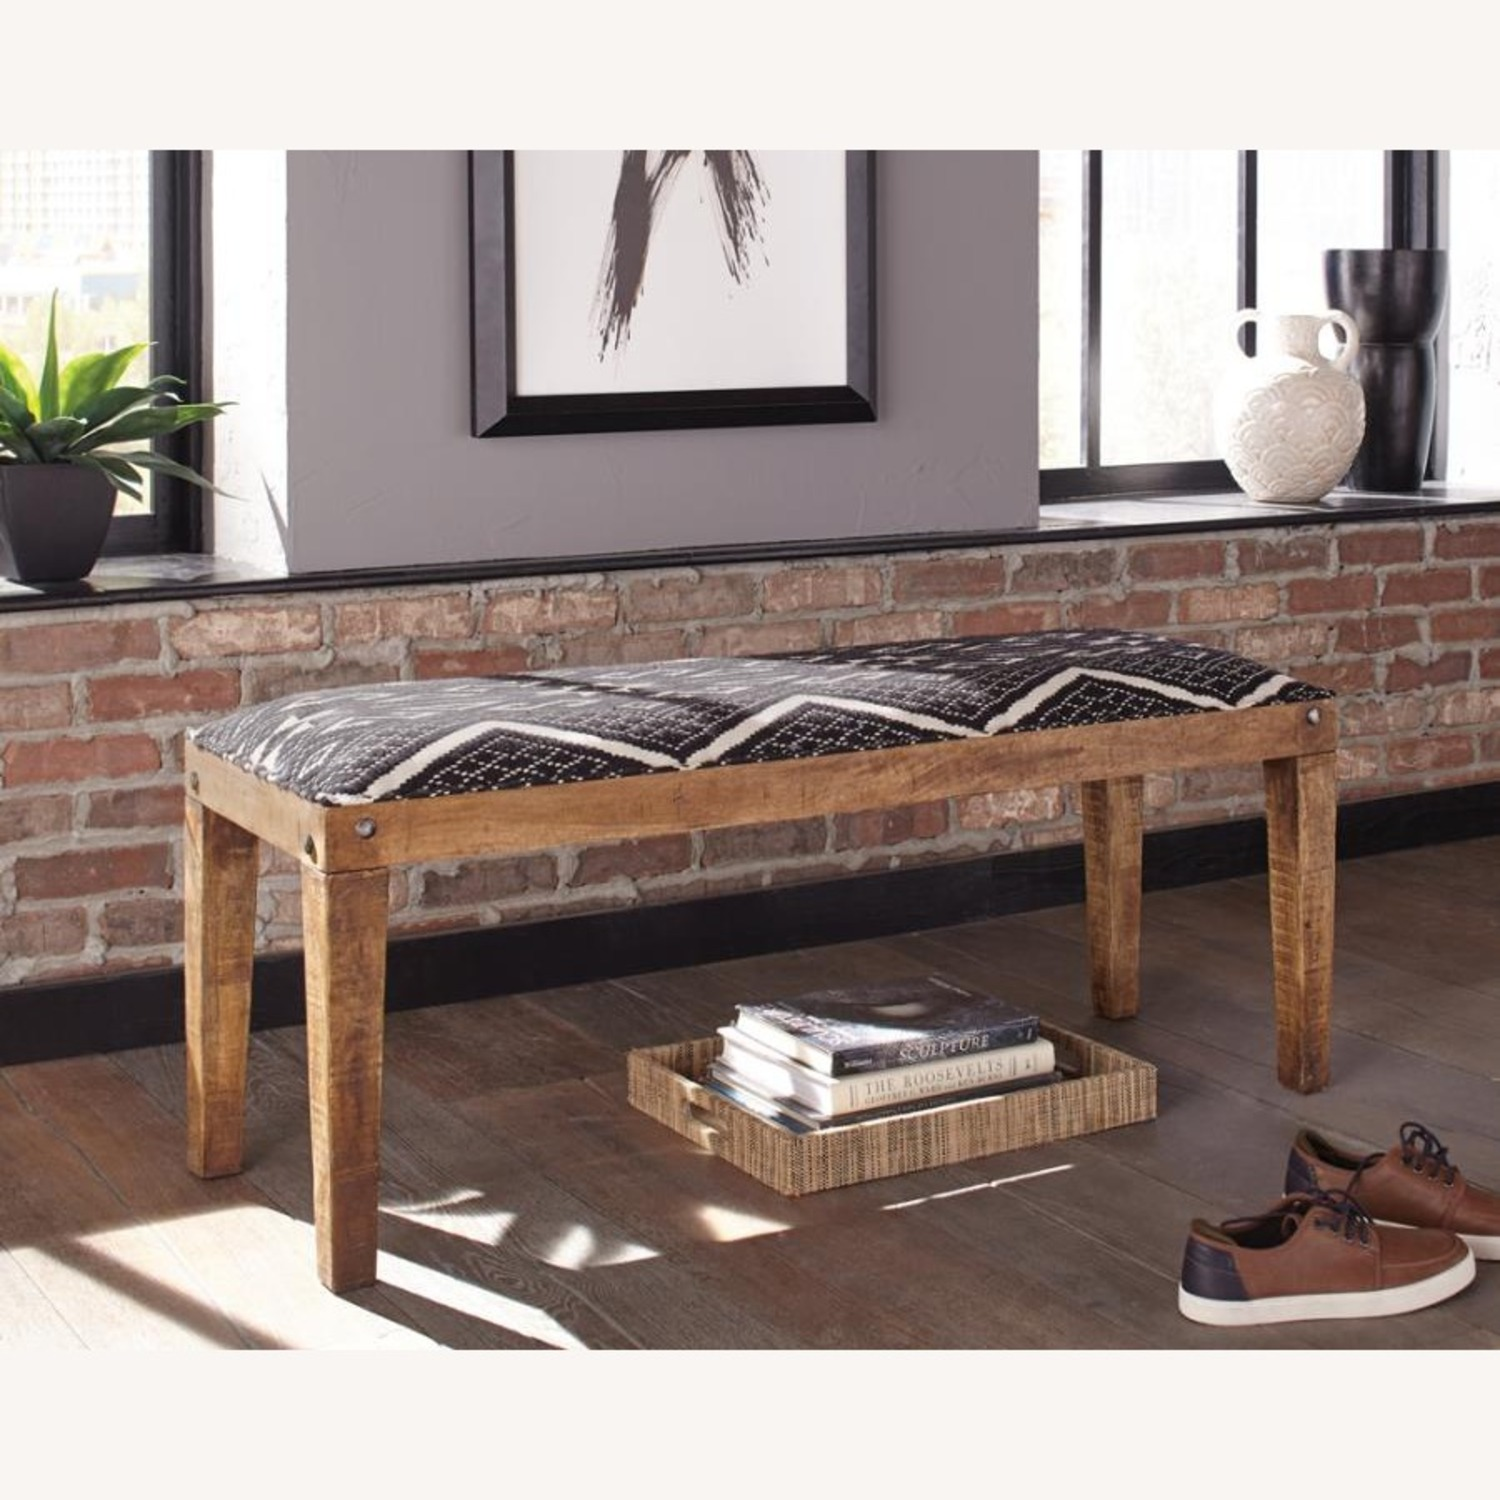 Bench In Bohemian Style White/Black Woven Fabric - image-1